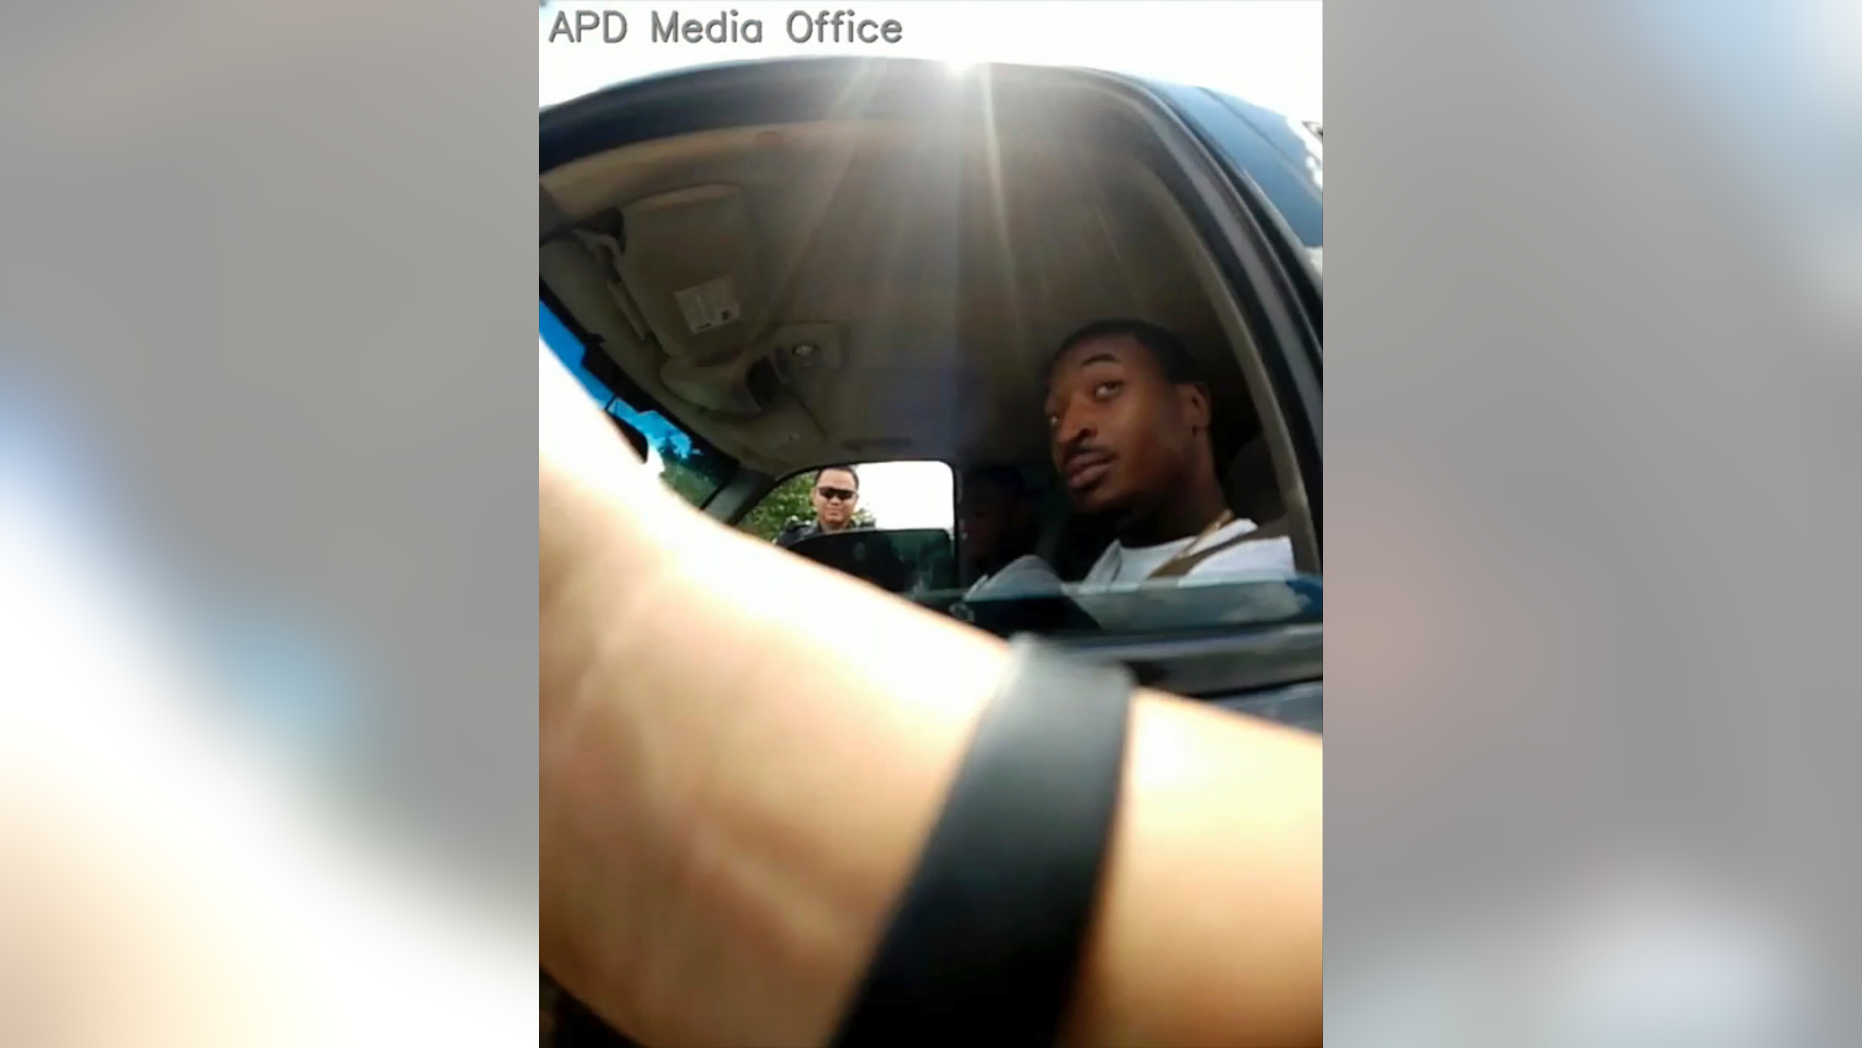 In this screenshot taken from Sept. 1, 2018, police body camera video provided by the Arlington Police Department, an officer, foreground, talks to O'Shae Terry after stopping him for a vehicle registration violation, in Arlington, Texas, as a second officer, background left, looks in from the passenger side window. Bau Tran, a Texas police officer has been fired after he was charged with criminally negligent homicide in the fatal shooting of a black man during a traffic stop last year. In a statement Friday, May 17, 2019 Arlington police announced Officer Bau Tran was fired after an internal investigation found policy violations that led to the Sept. 1 shooting of 24-year-old O'Shae Terry. (Arlington Police Department via AP, File)